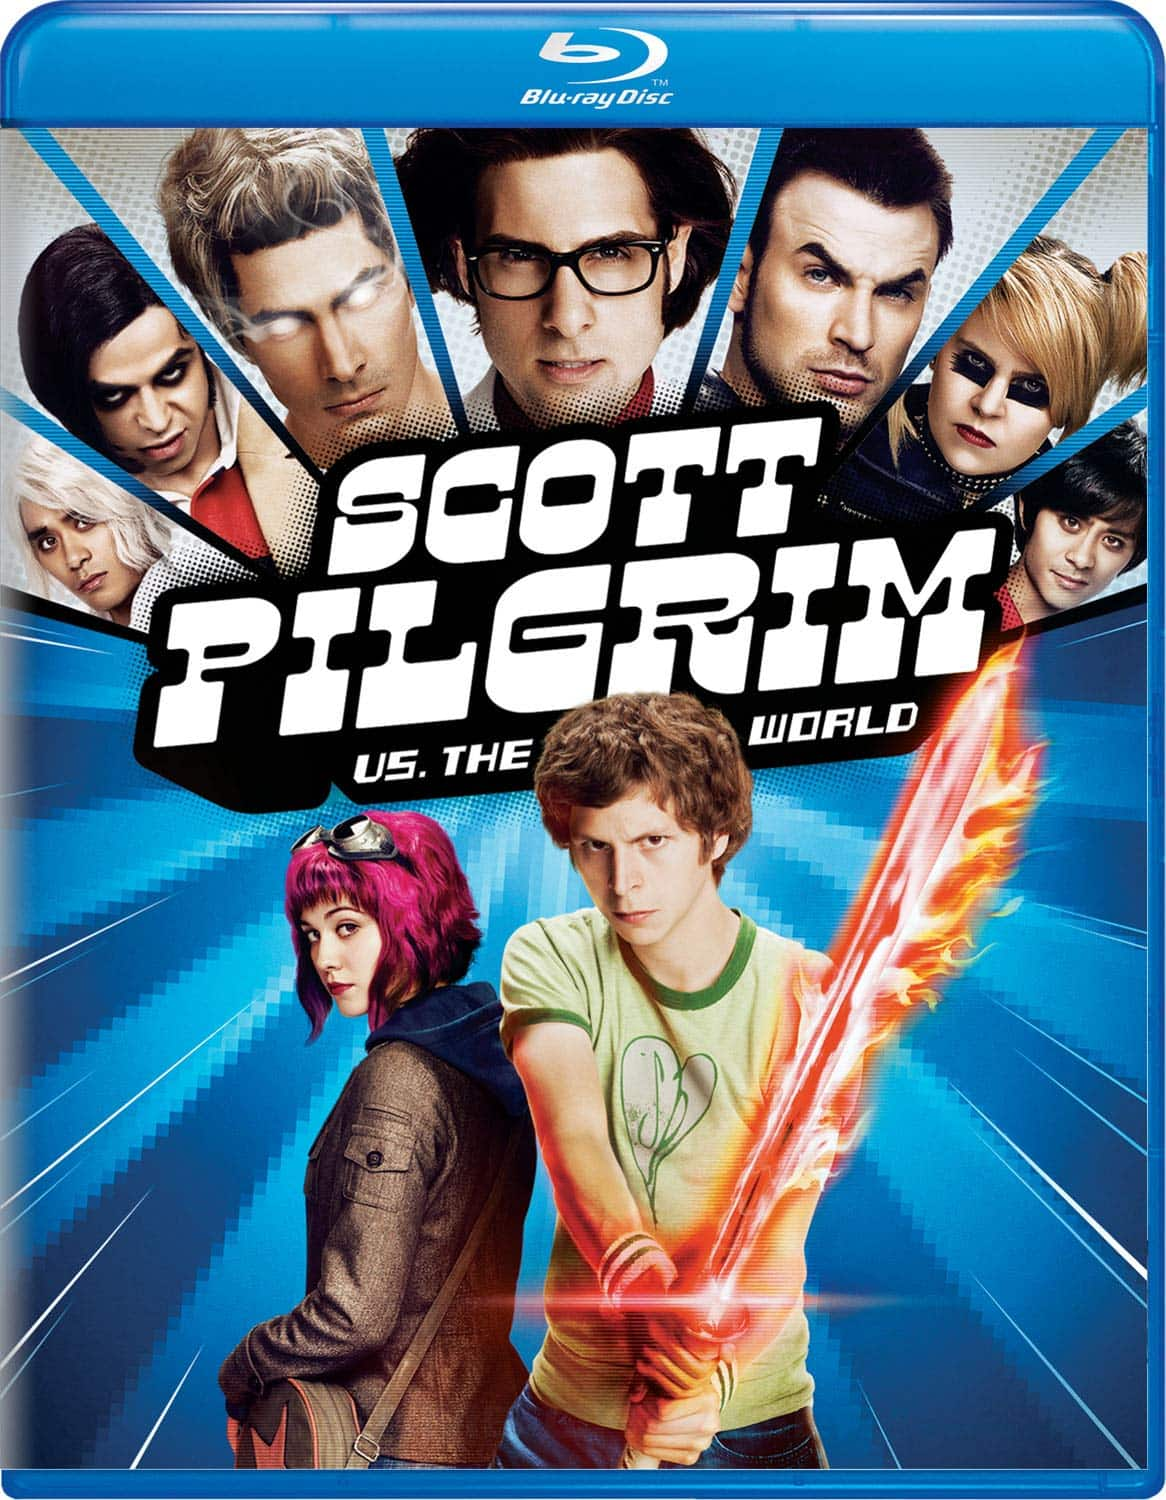 Scott Pilgrim vs. The World (Blu-ray) $4